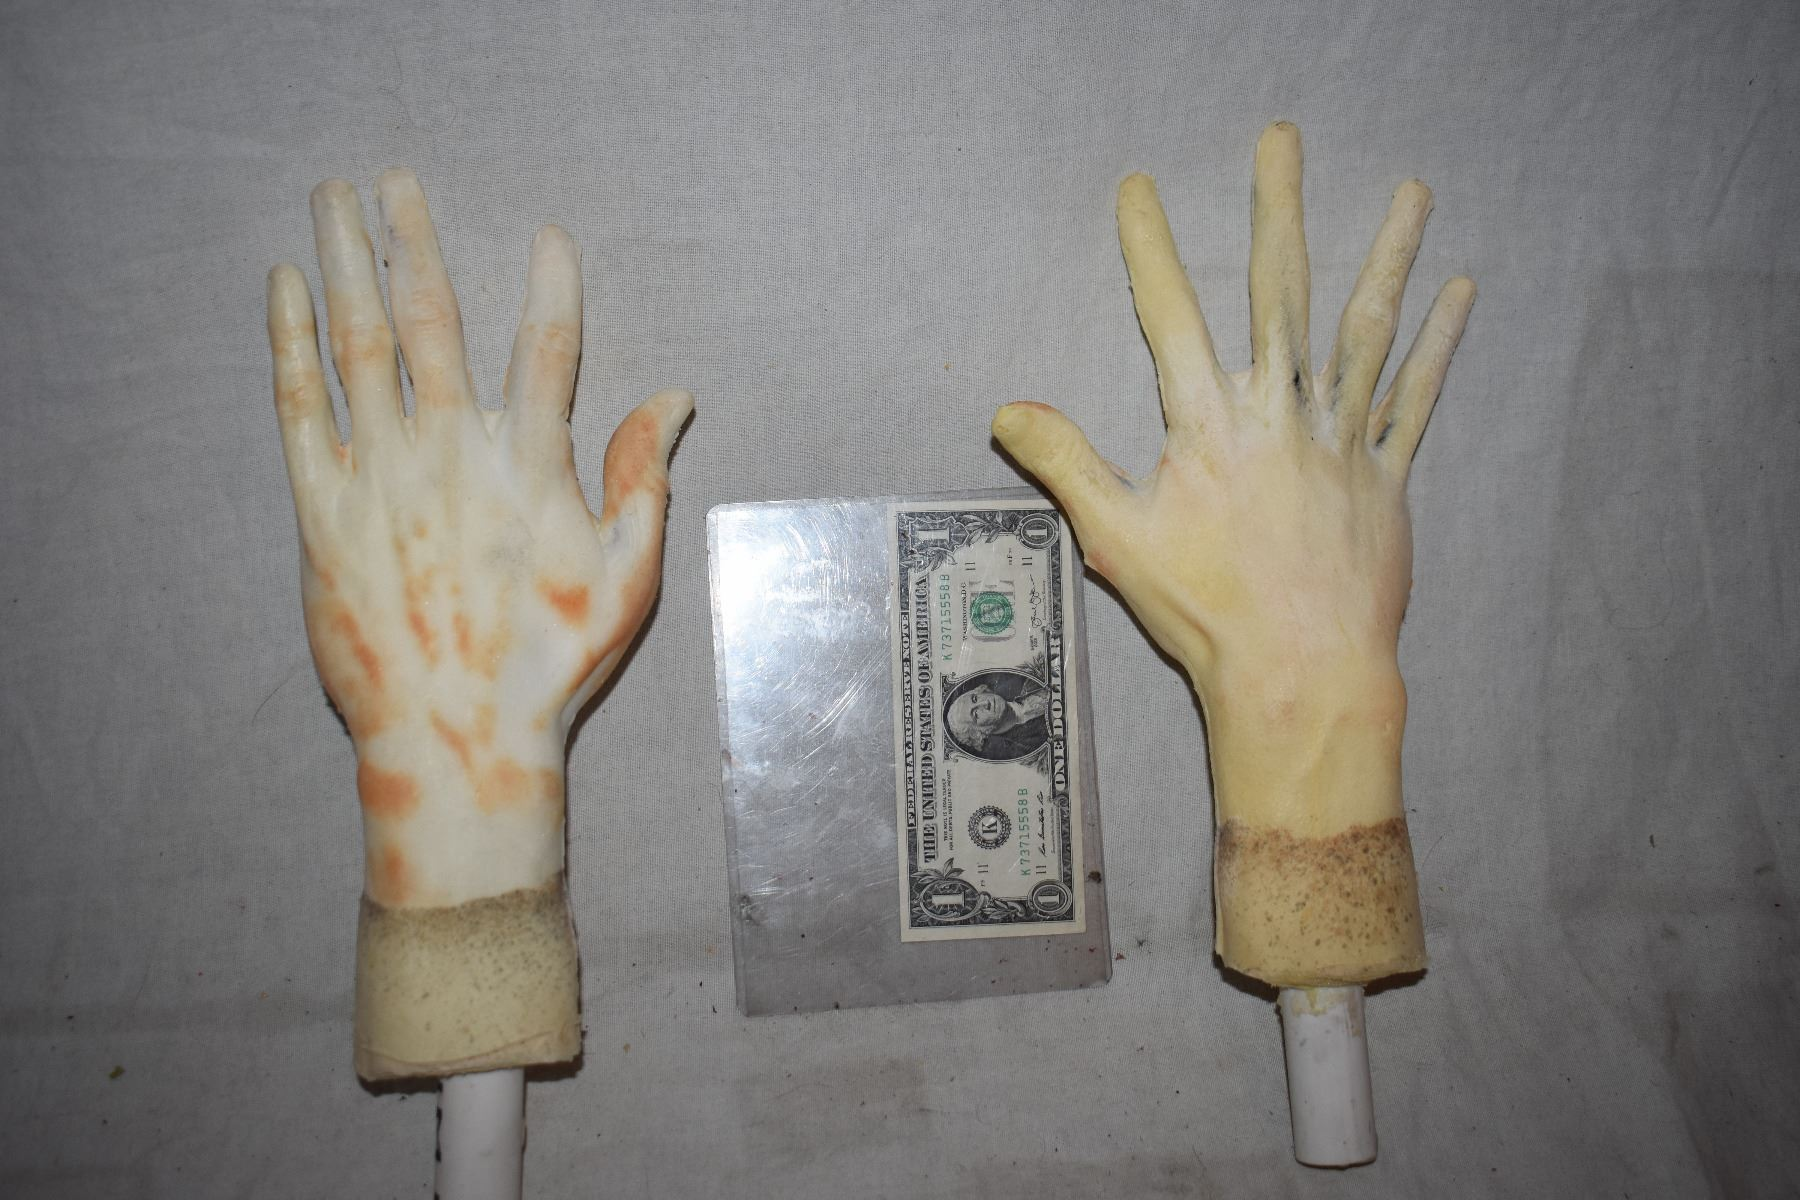 poseable armatured matched pair of hands for dummy or mannequin